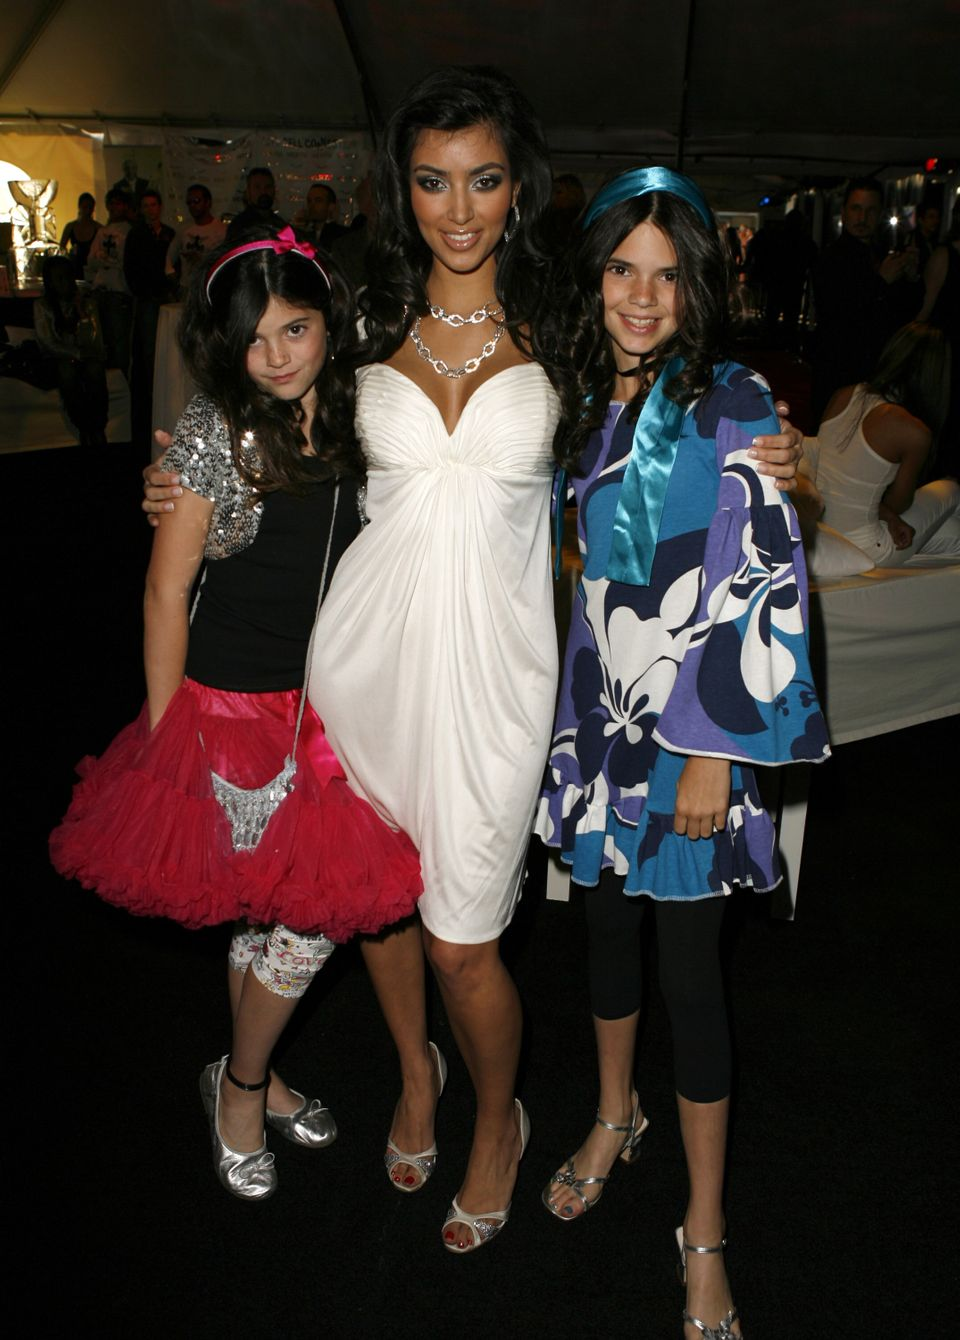 Remembering The Fashion From Season 1 Of 'Keeping Up With The Kardashians' 3